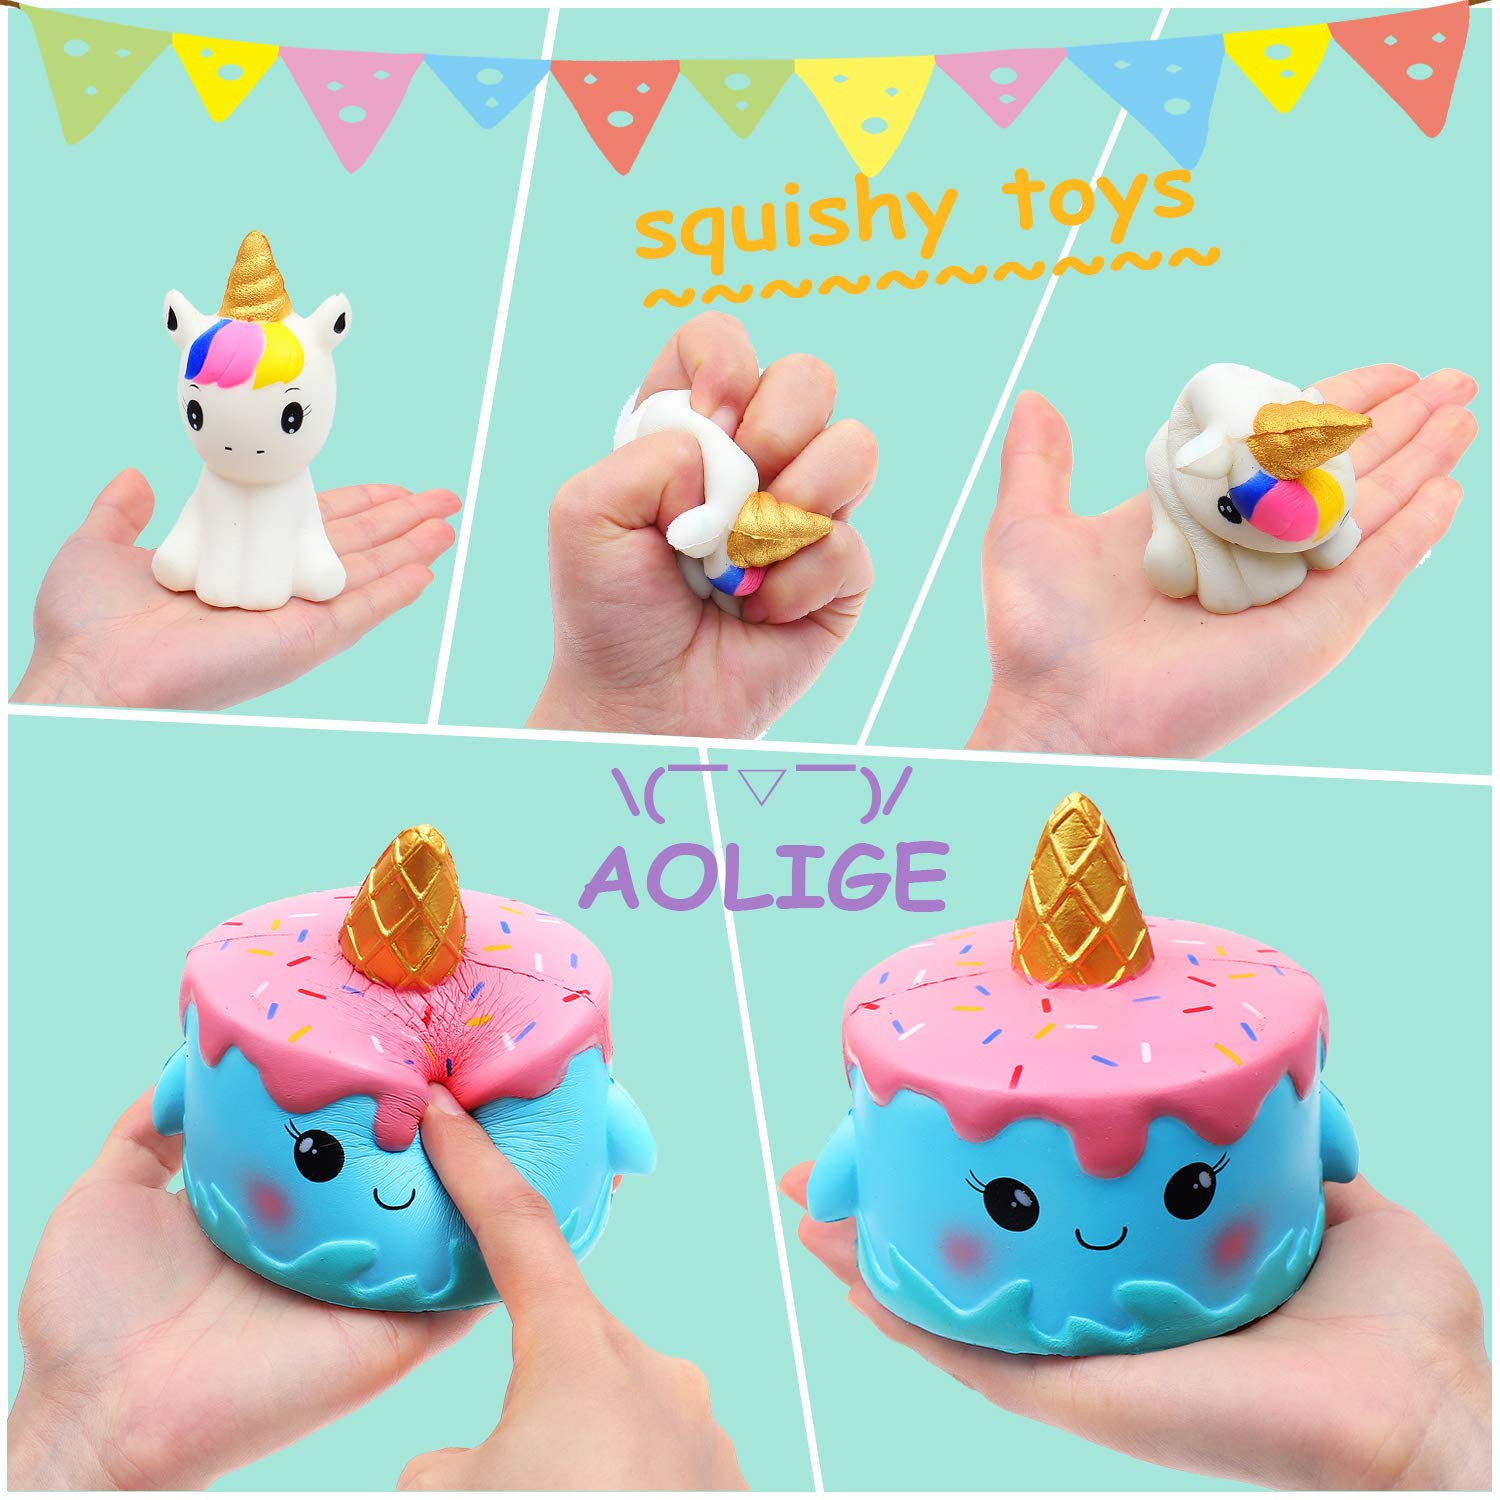 AOLIGE Kawaii Slow Rising Squishies Pack Unicorn Cake Donut Squishy Toys for Boys and Girls 5Pcs by AOLIGE (Image #4)